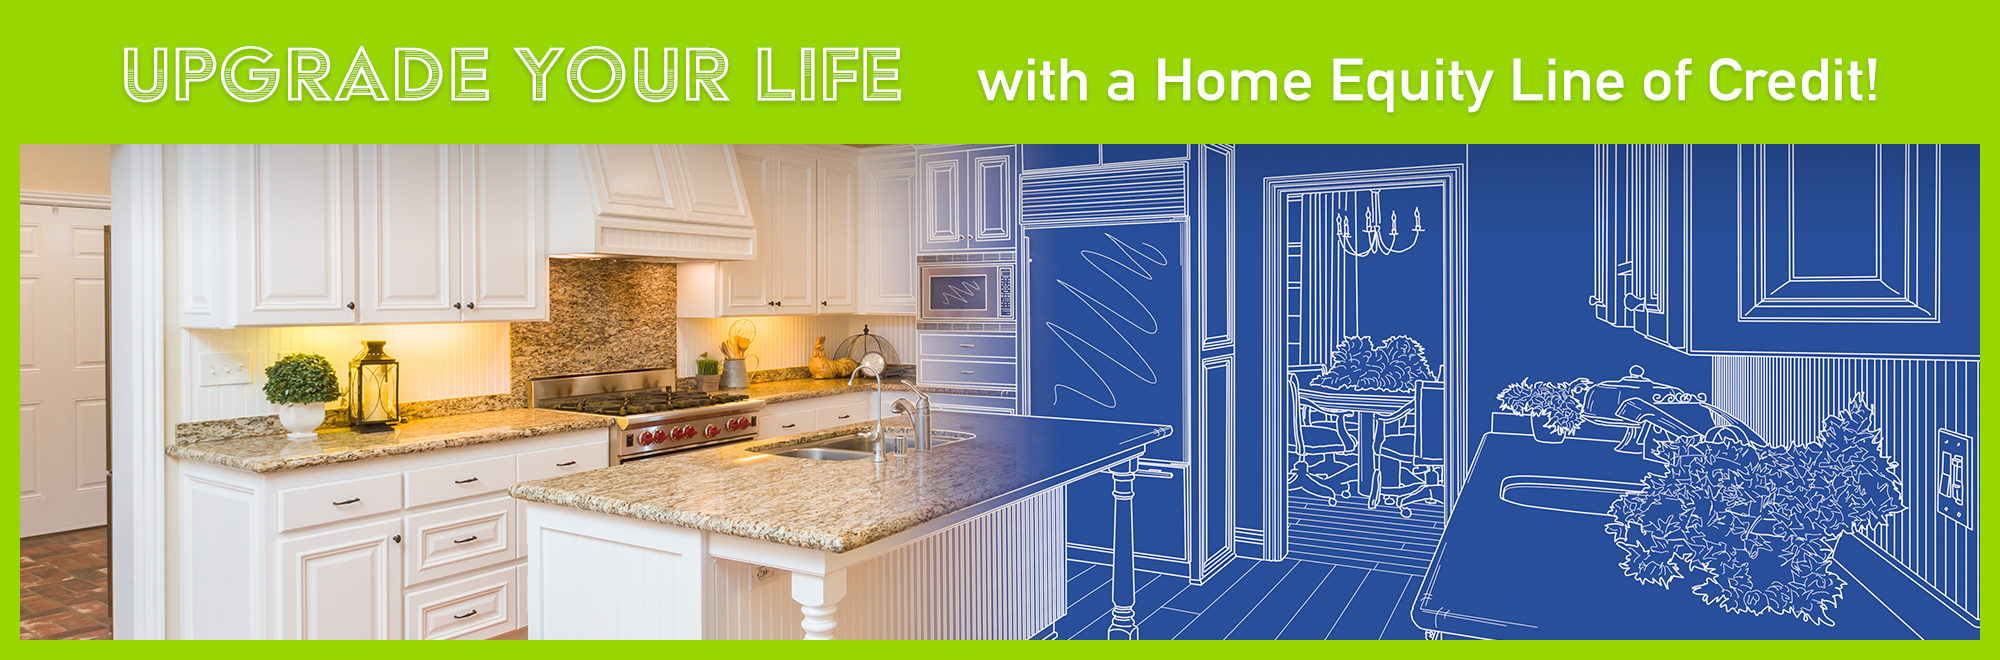 Image of a remodeled kitchen mixed with a future blueprint of the kitchen.